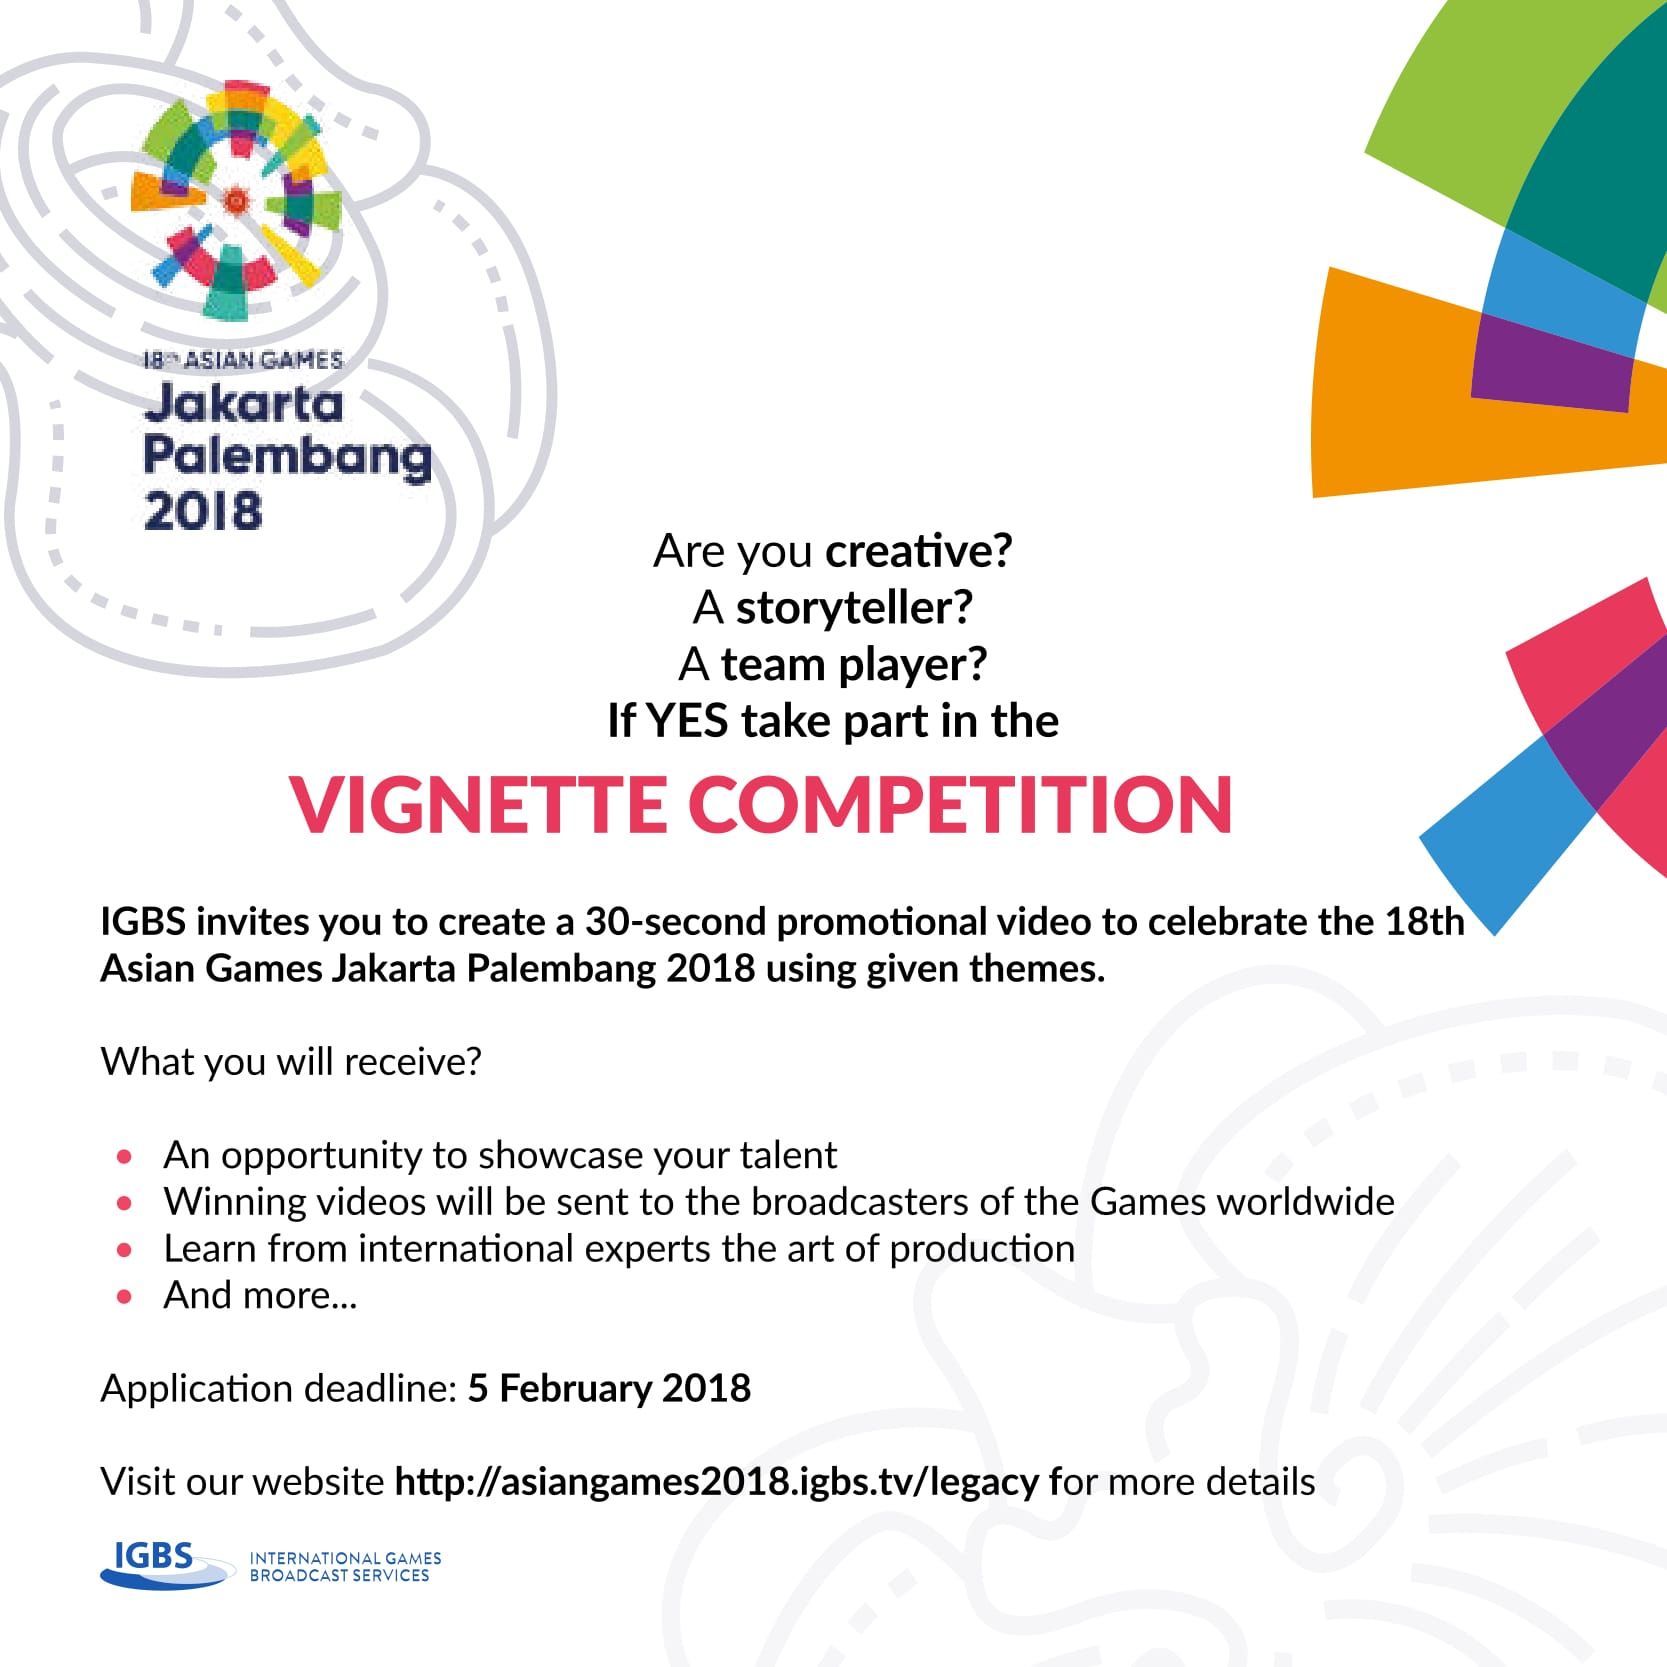 vignette competition 18 Asian Games 2018 - Asian Games 2018 Igbs